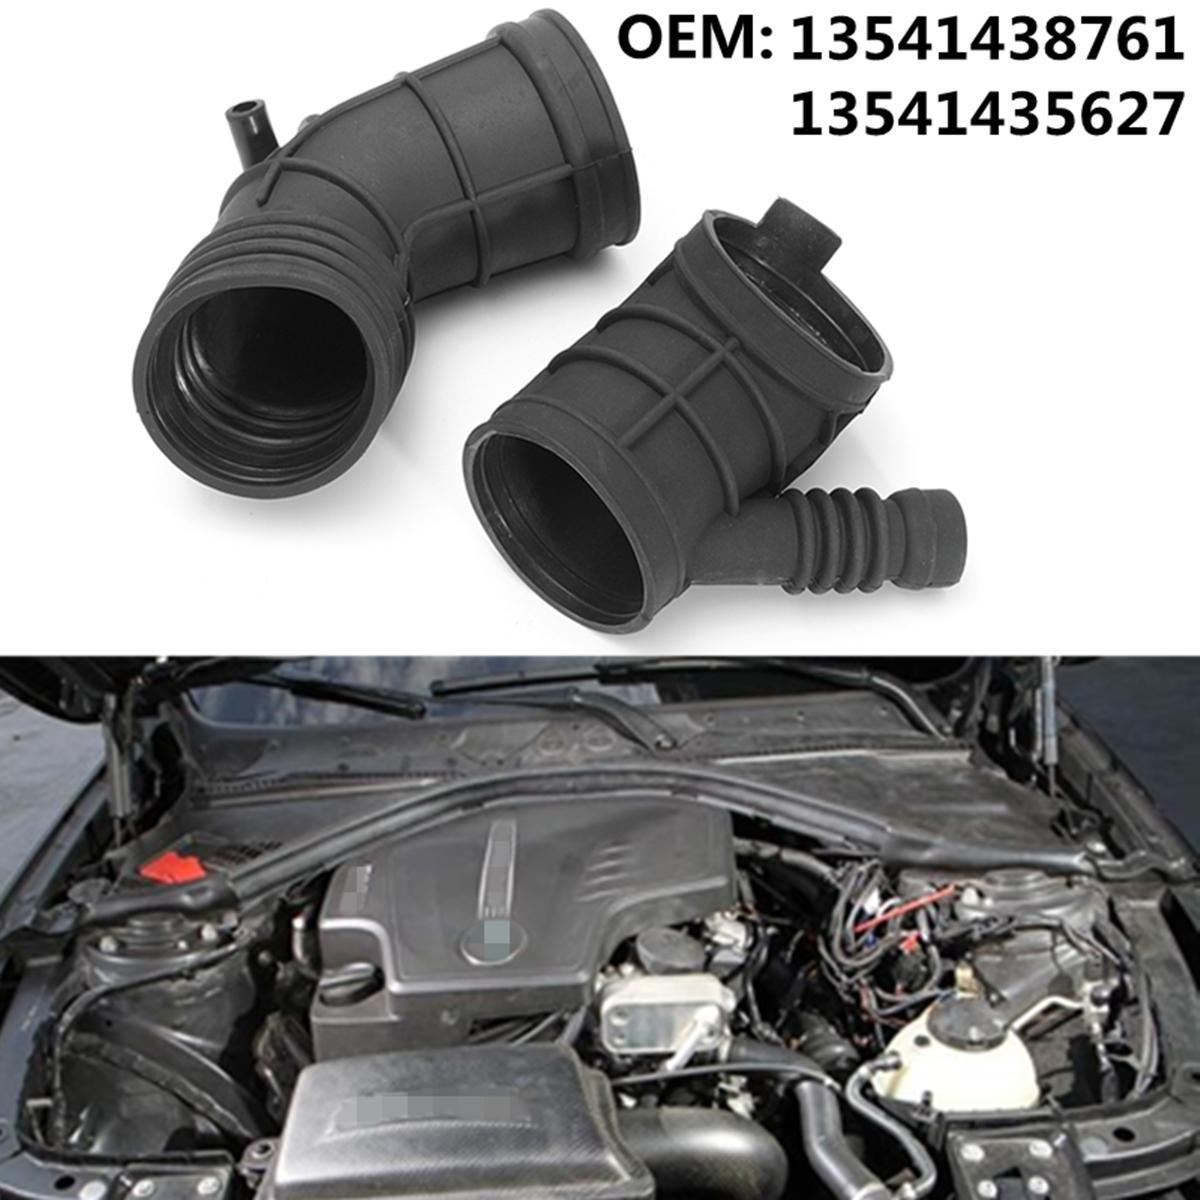 Bmw E46 E36 Z3 M56 330xi 330i 330ci 325i 325ci Ene Intake Boot Kit Null Buy Online At Best Prices In Pakistan Daraz Pk